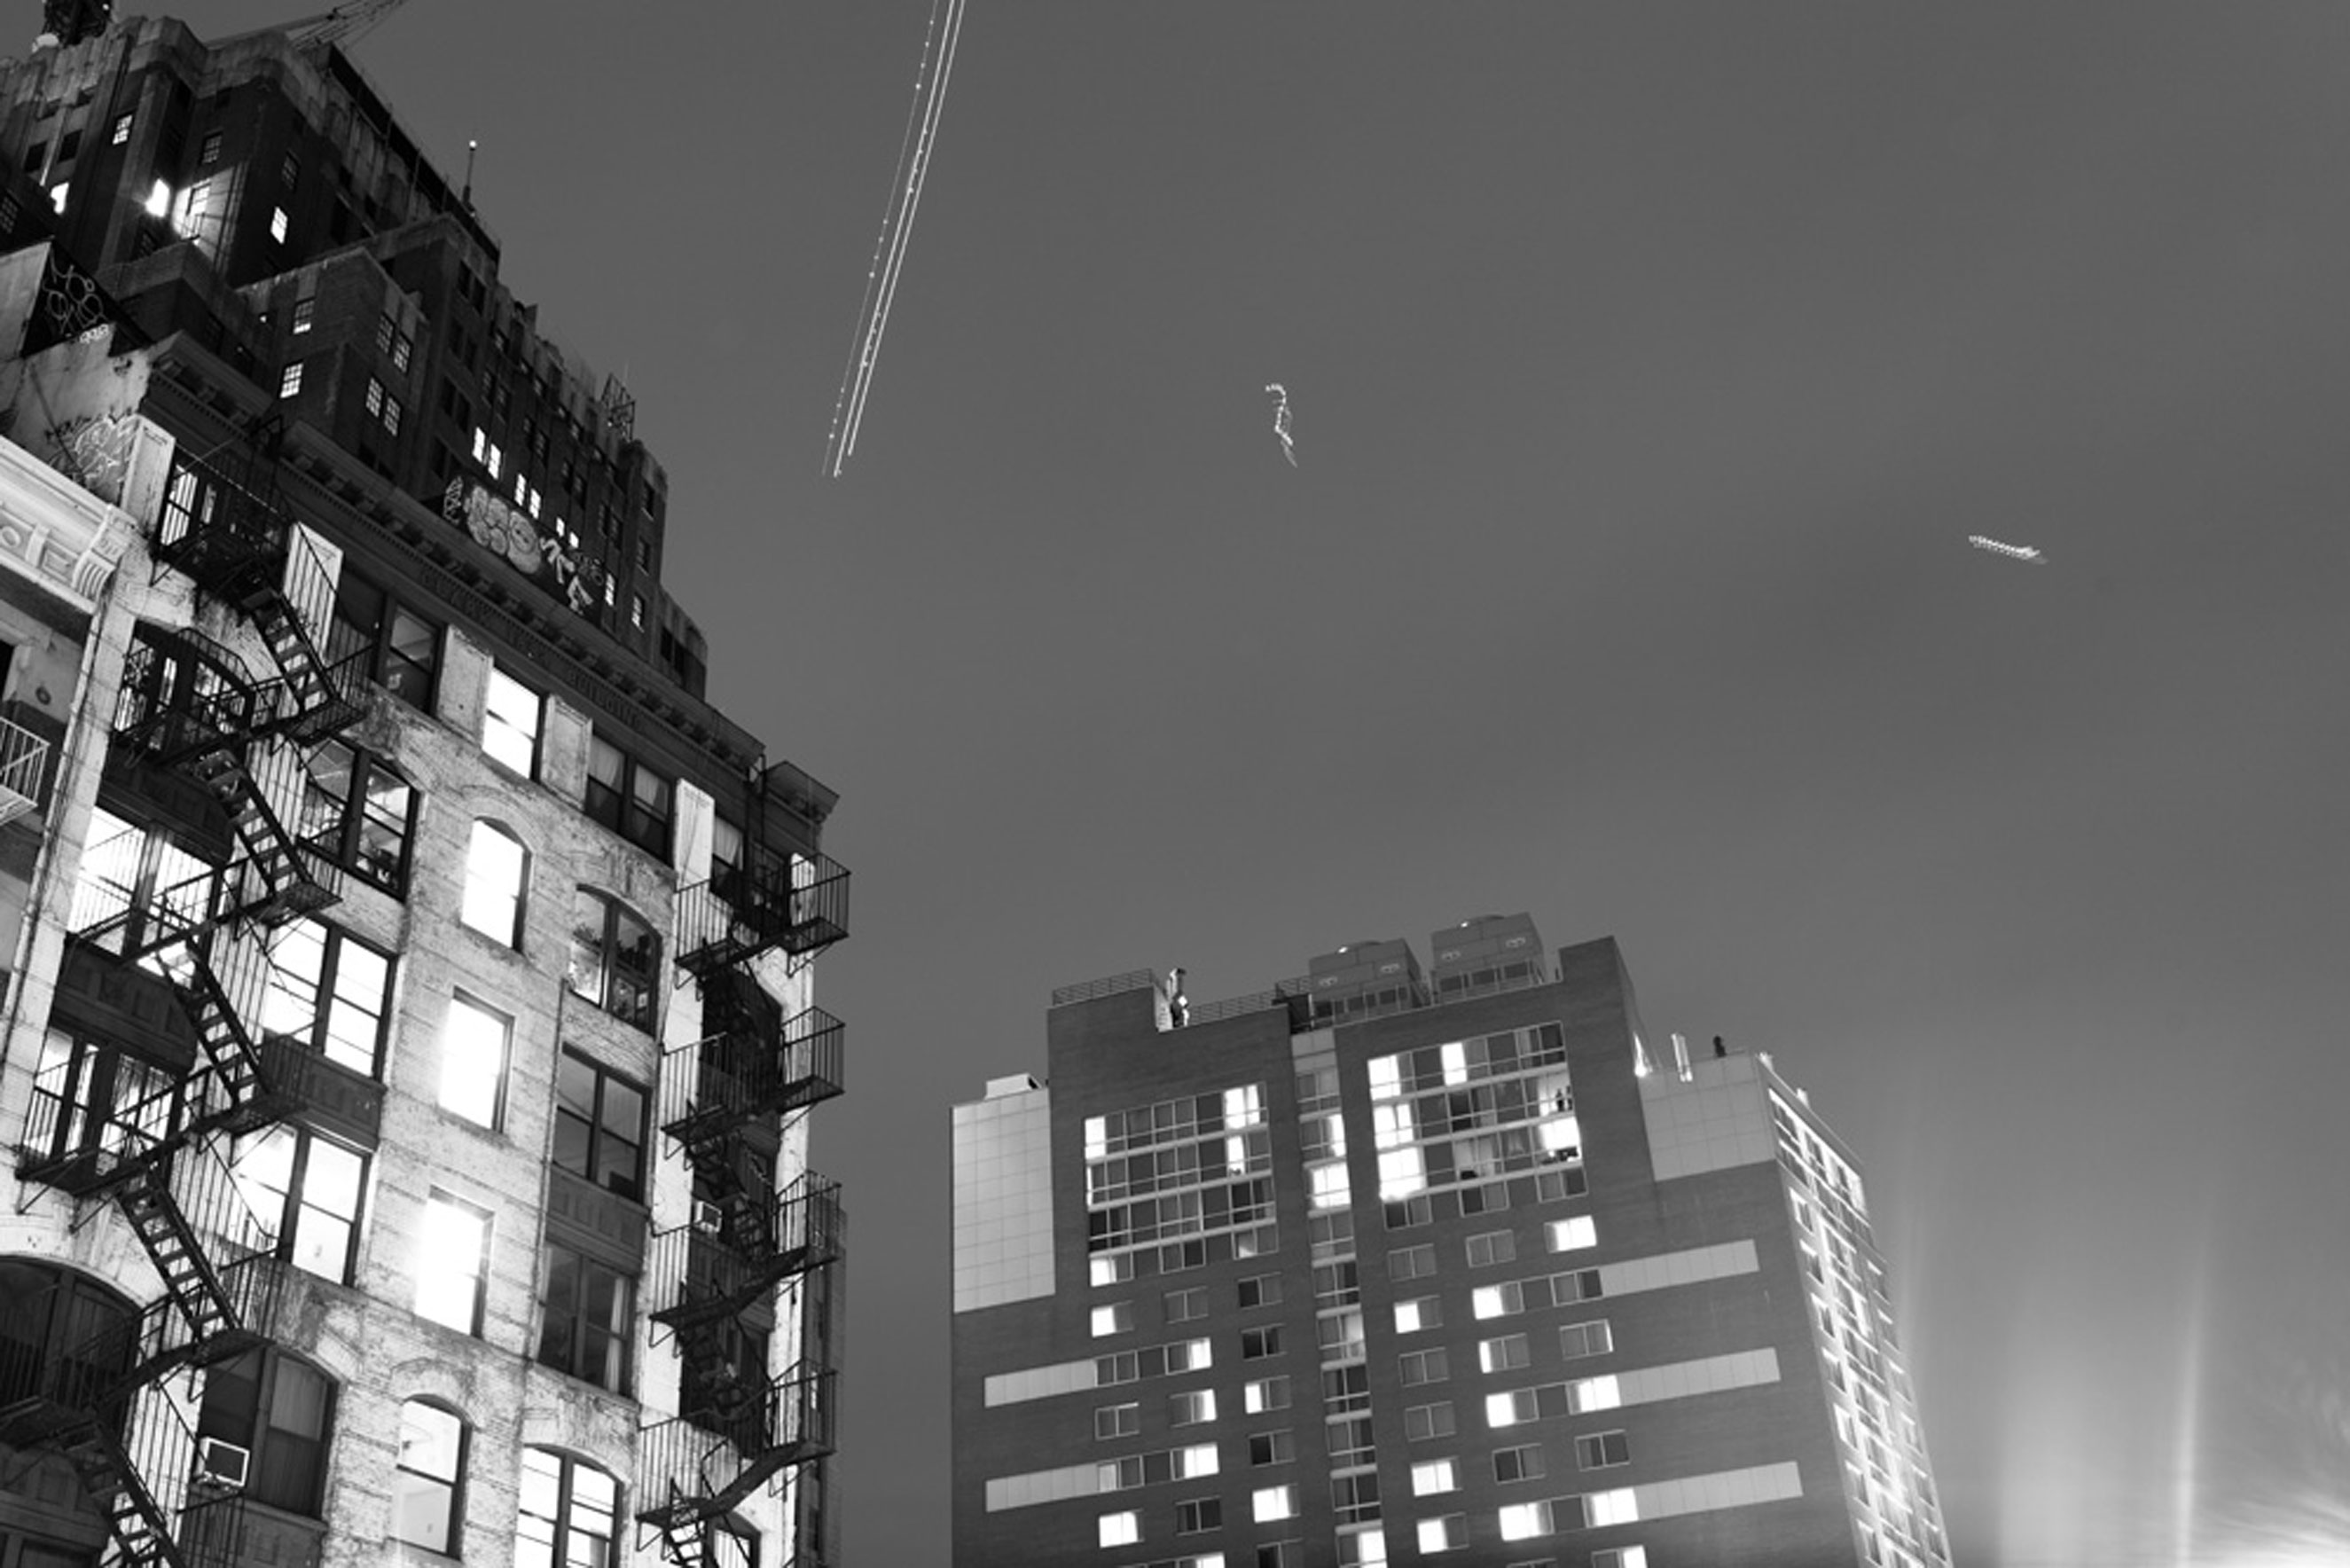 NYPD helicopters in the sky above downtown Manhattan  on Dec. 4, 2014.